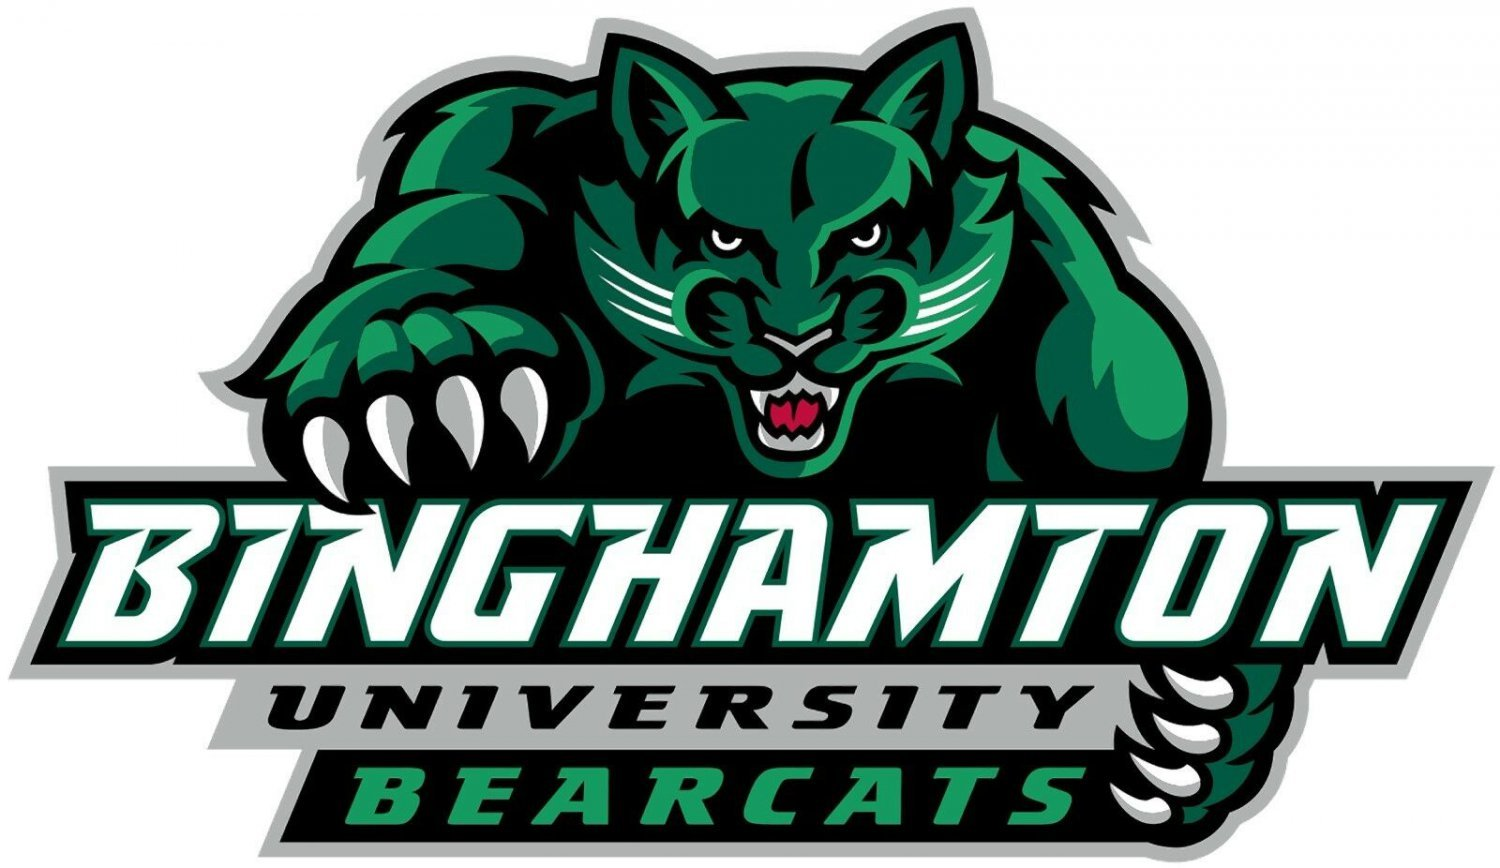 2 Inch Full Color Binghamton Bearcats Logo Vinyl Decal Cellphone Hardhat Sticker 00016